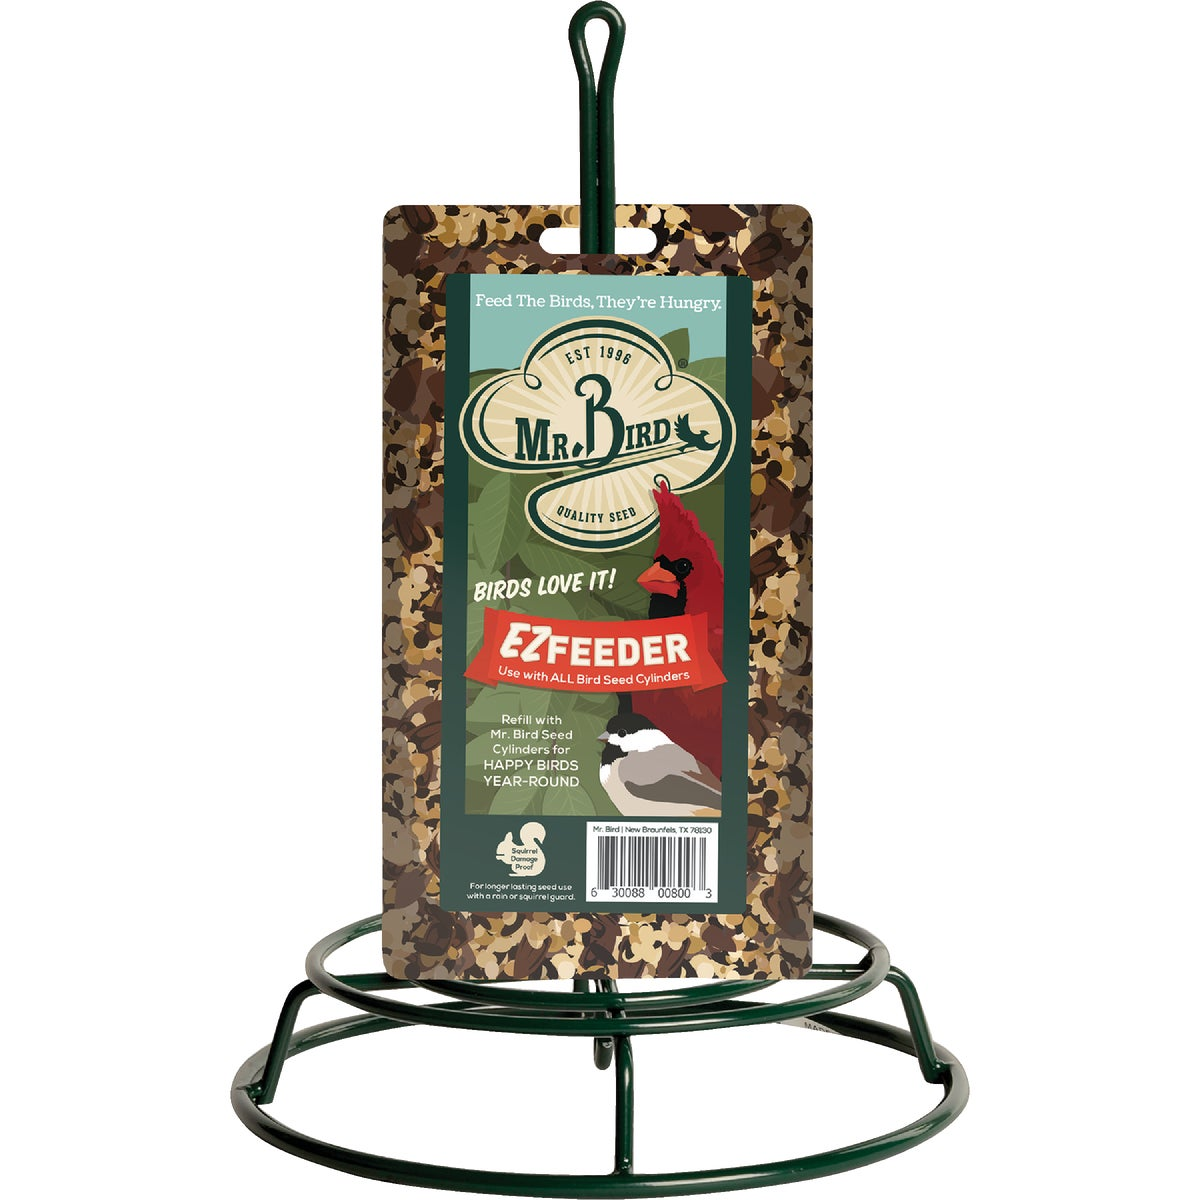 SEED LOG HANGING FEEDER